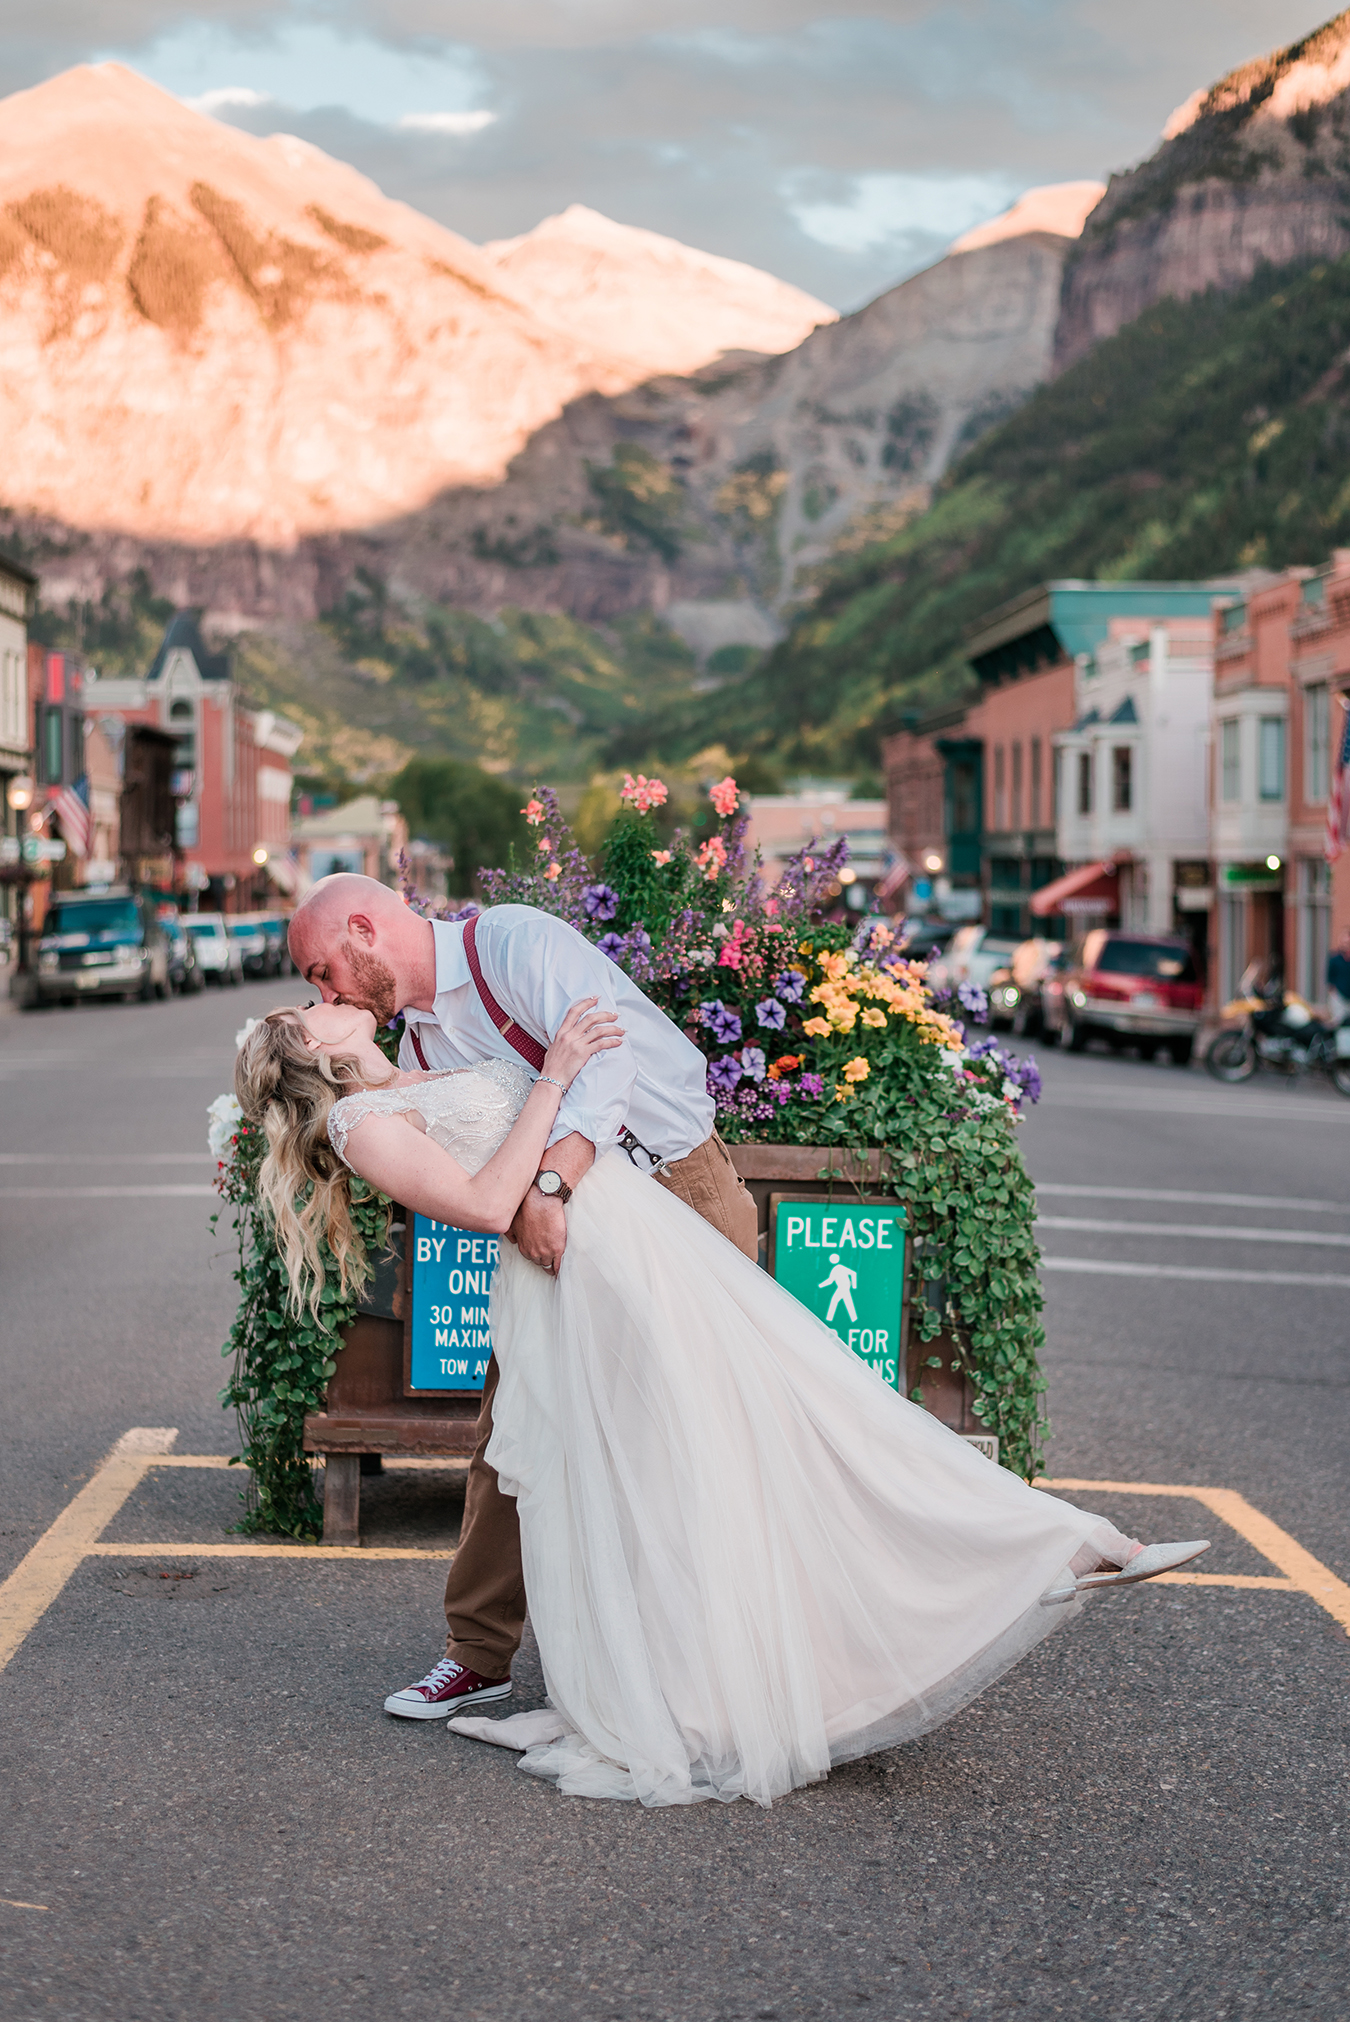 Kevin & Lynnette's Telluride Wedding at Mountain Village | amanda.matilda.photography